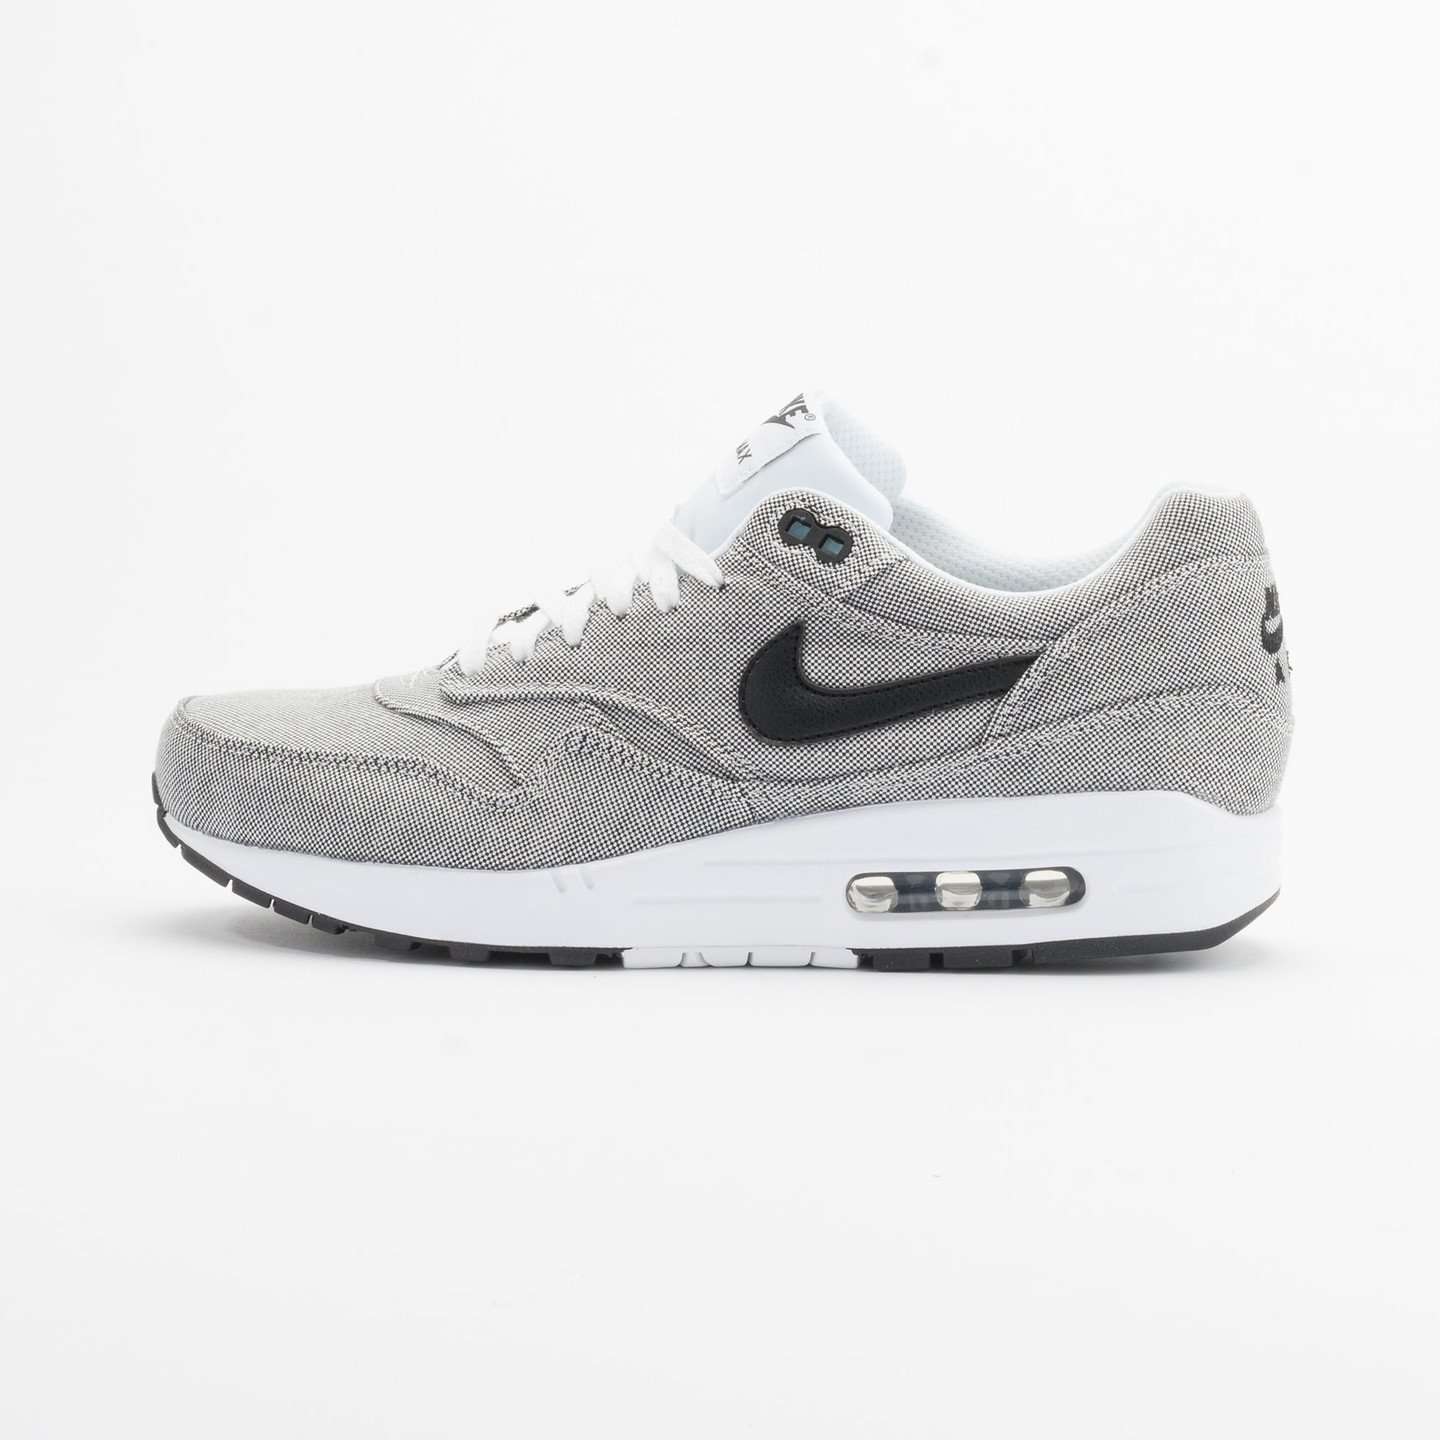 Nike Air Max 1 Prm Picknick Pack Black/White 512033-103-41